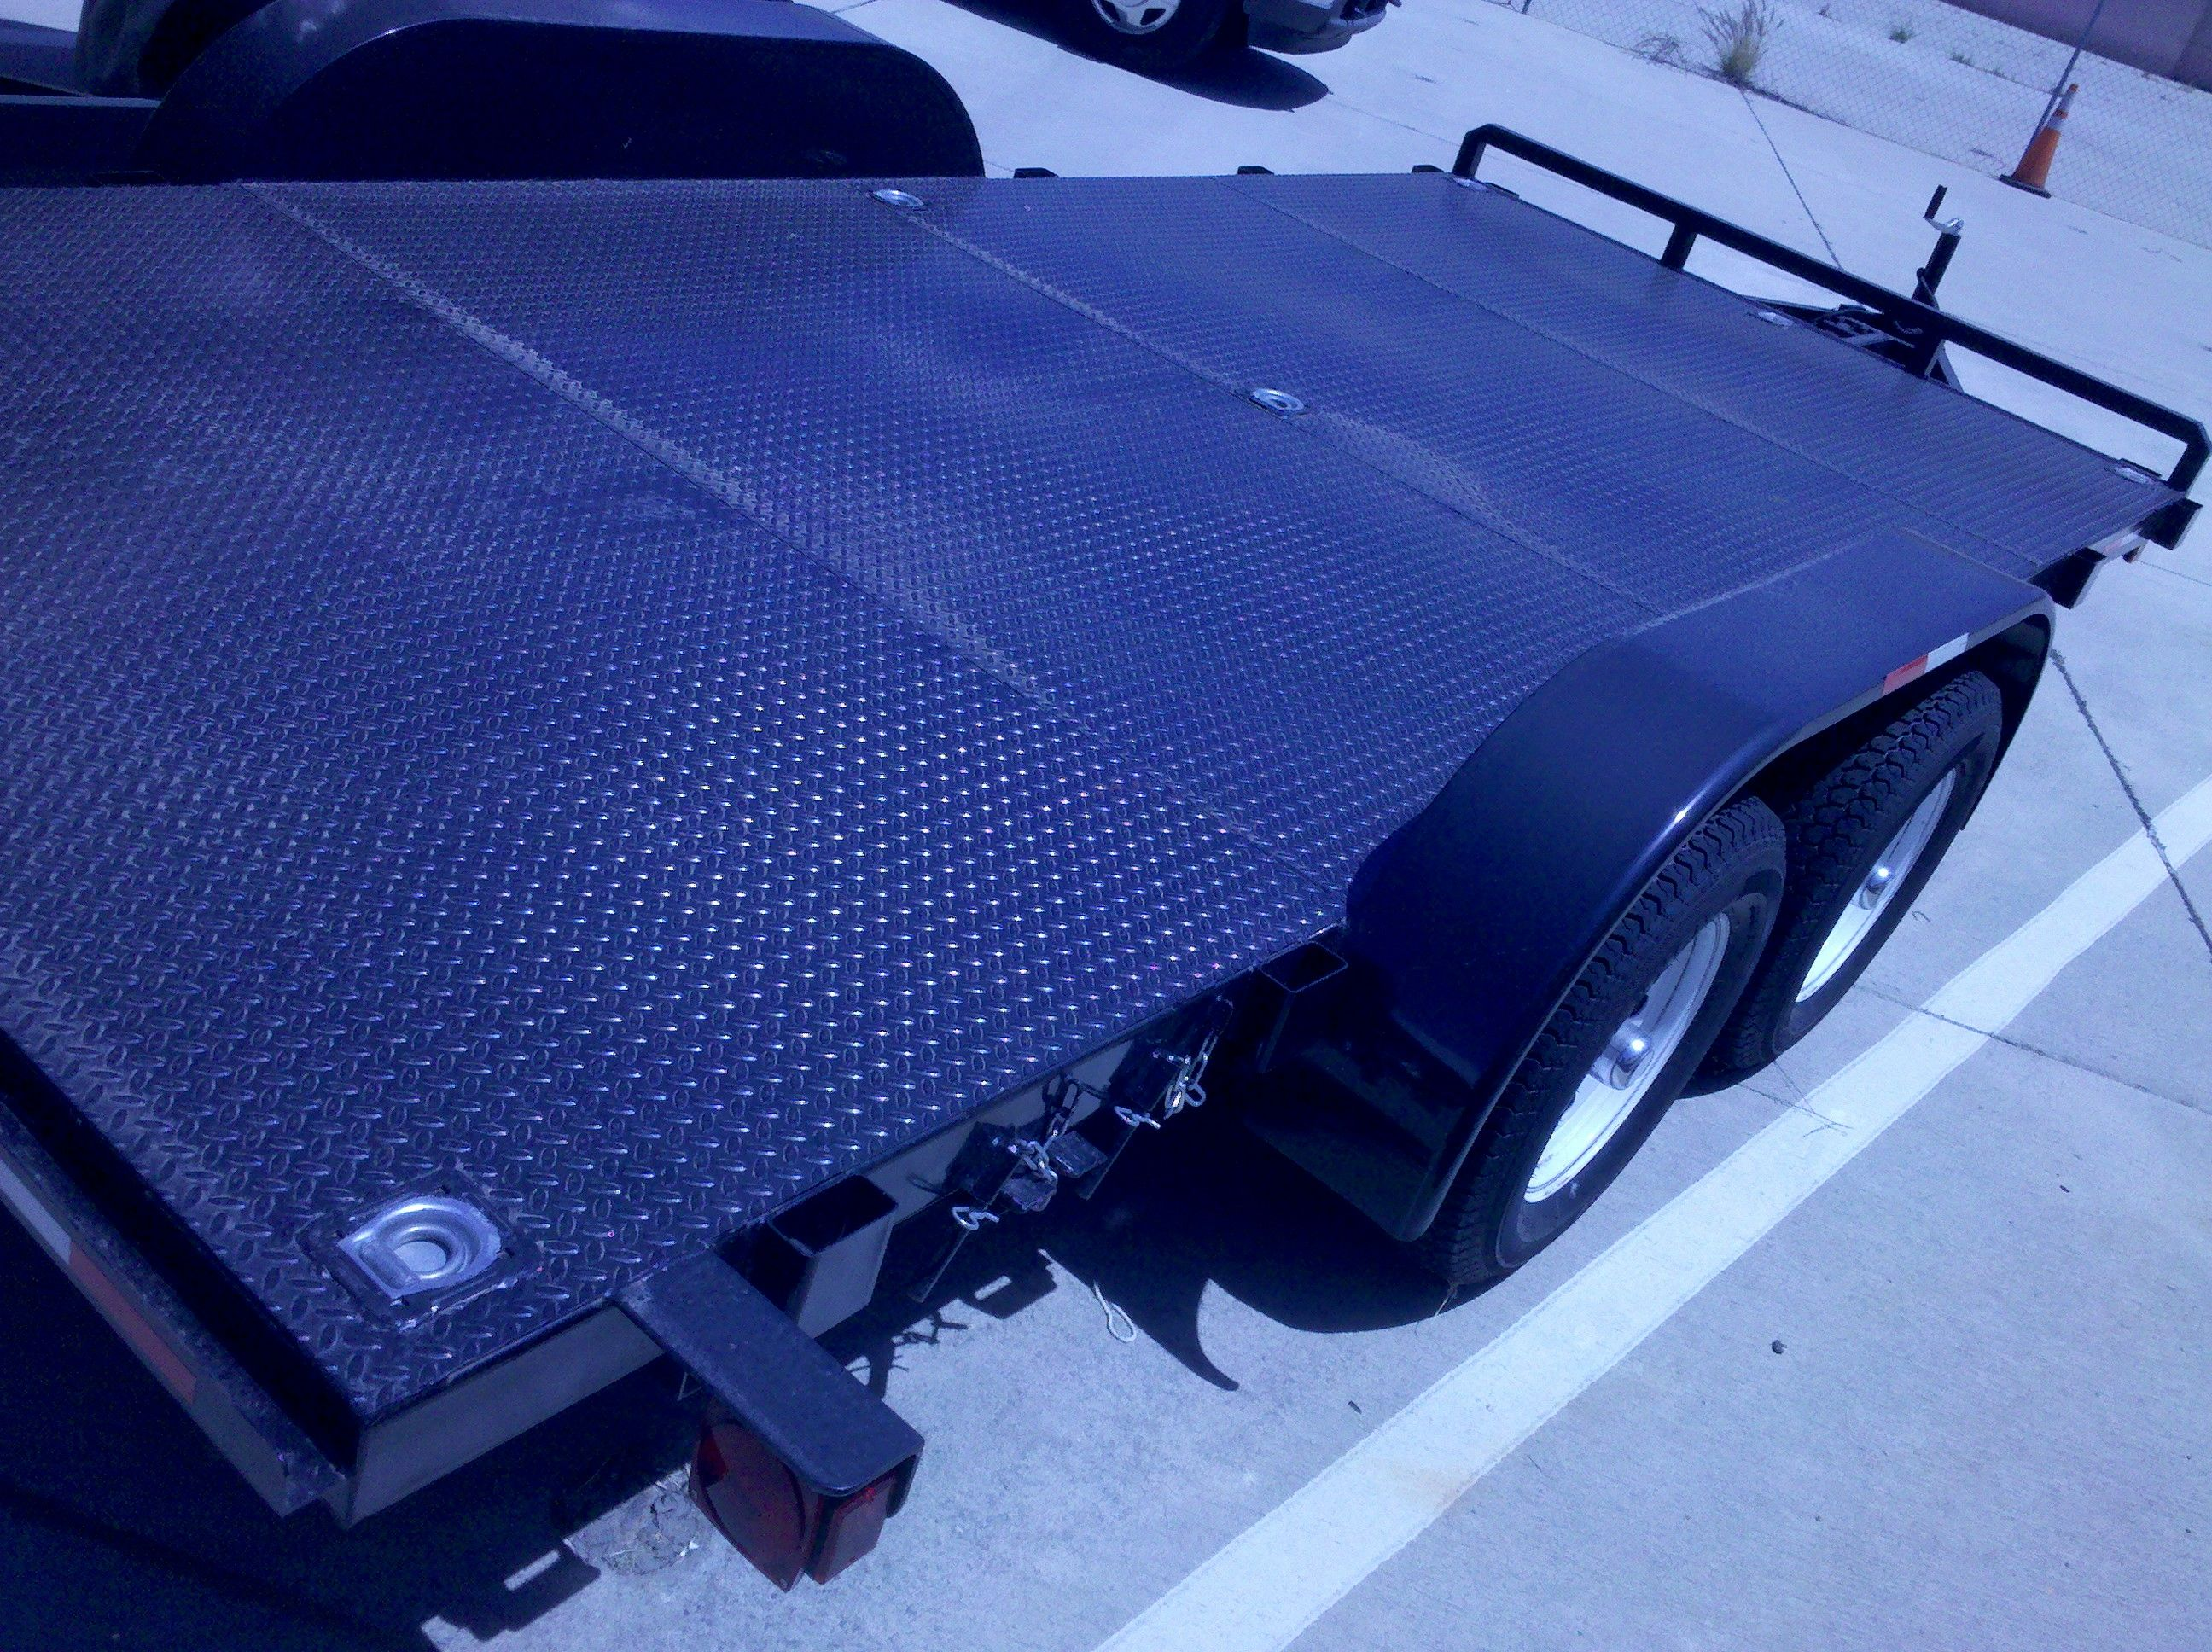 Standard Car Carrier With Full Diamond Plate Deck 83 Between Fenders Plus Front Bumper Stop And 6 Slide Out Ramp Car Carrier Car Trailer Hauling Trailers